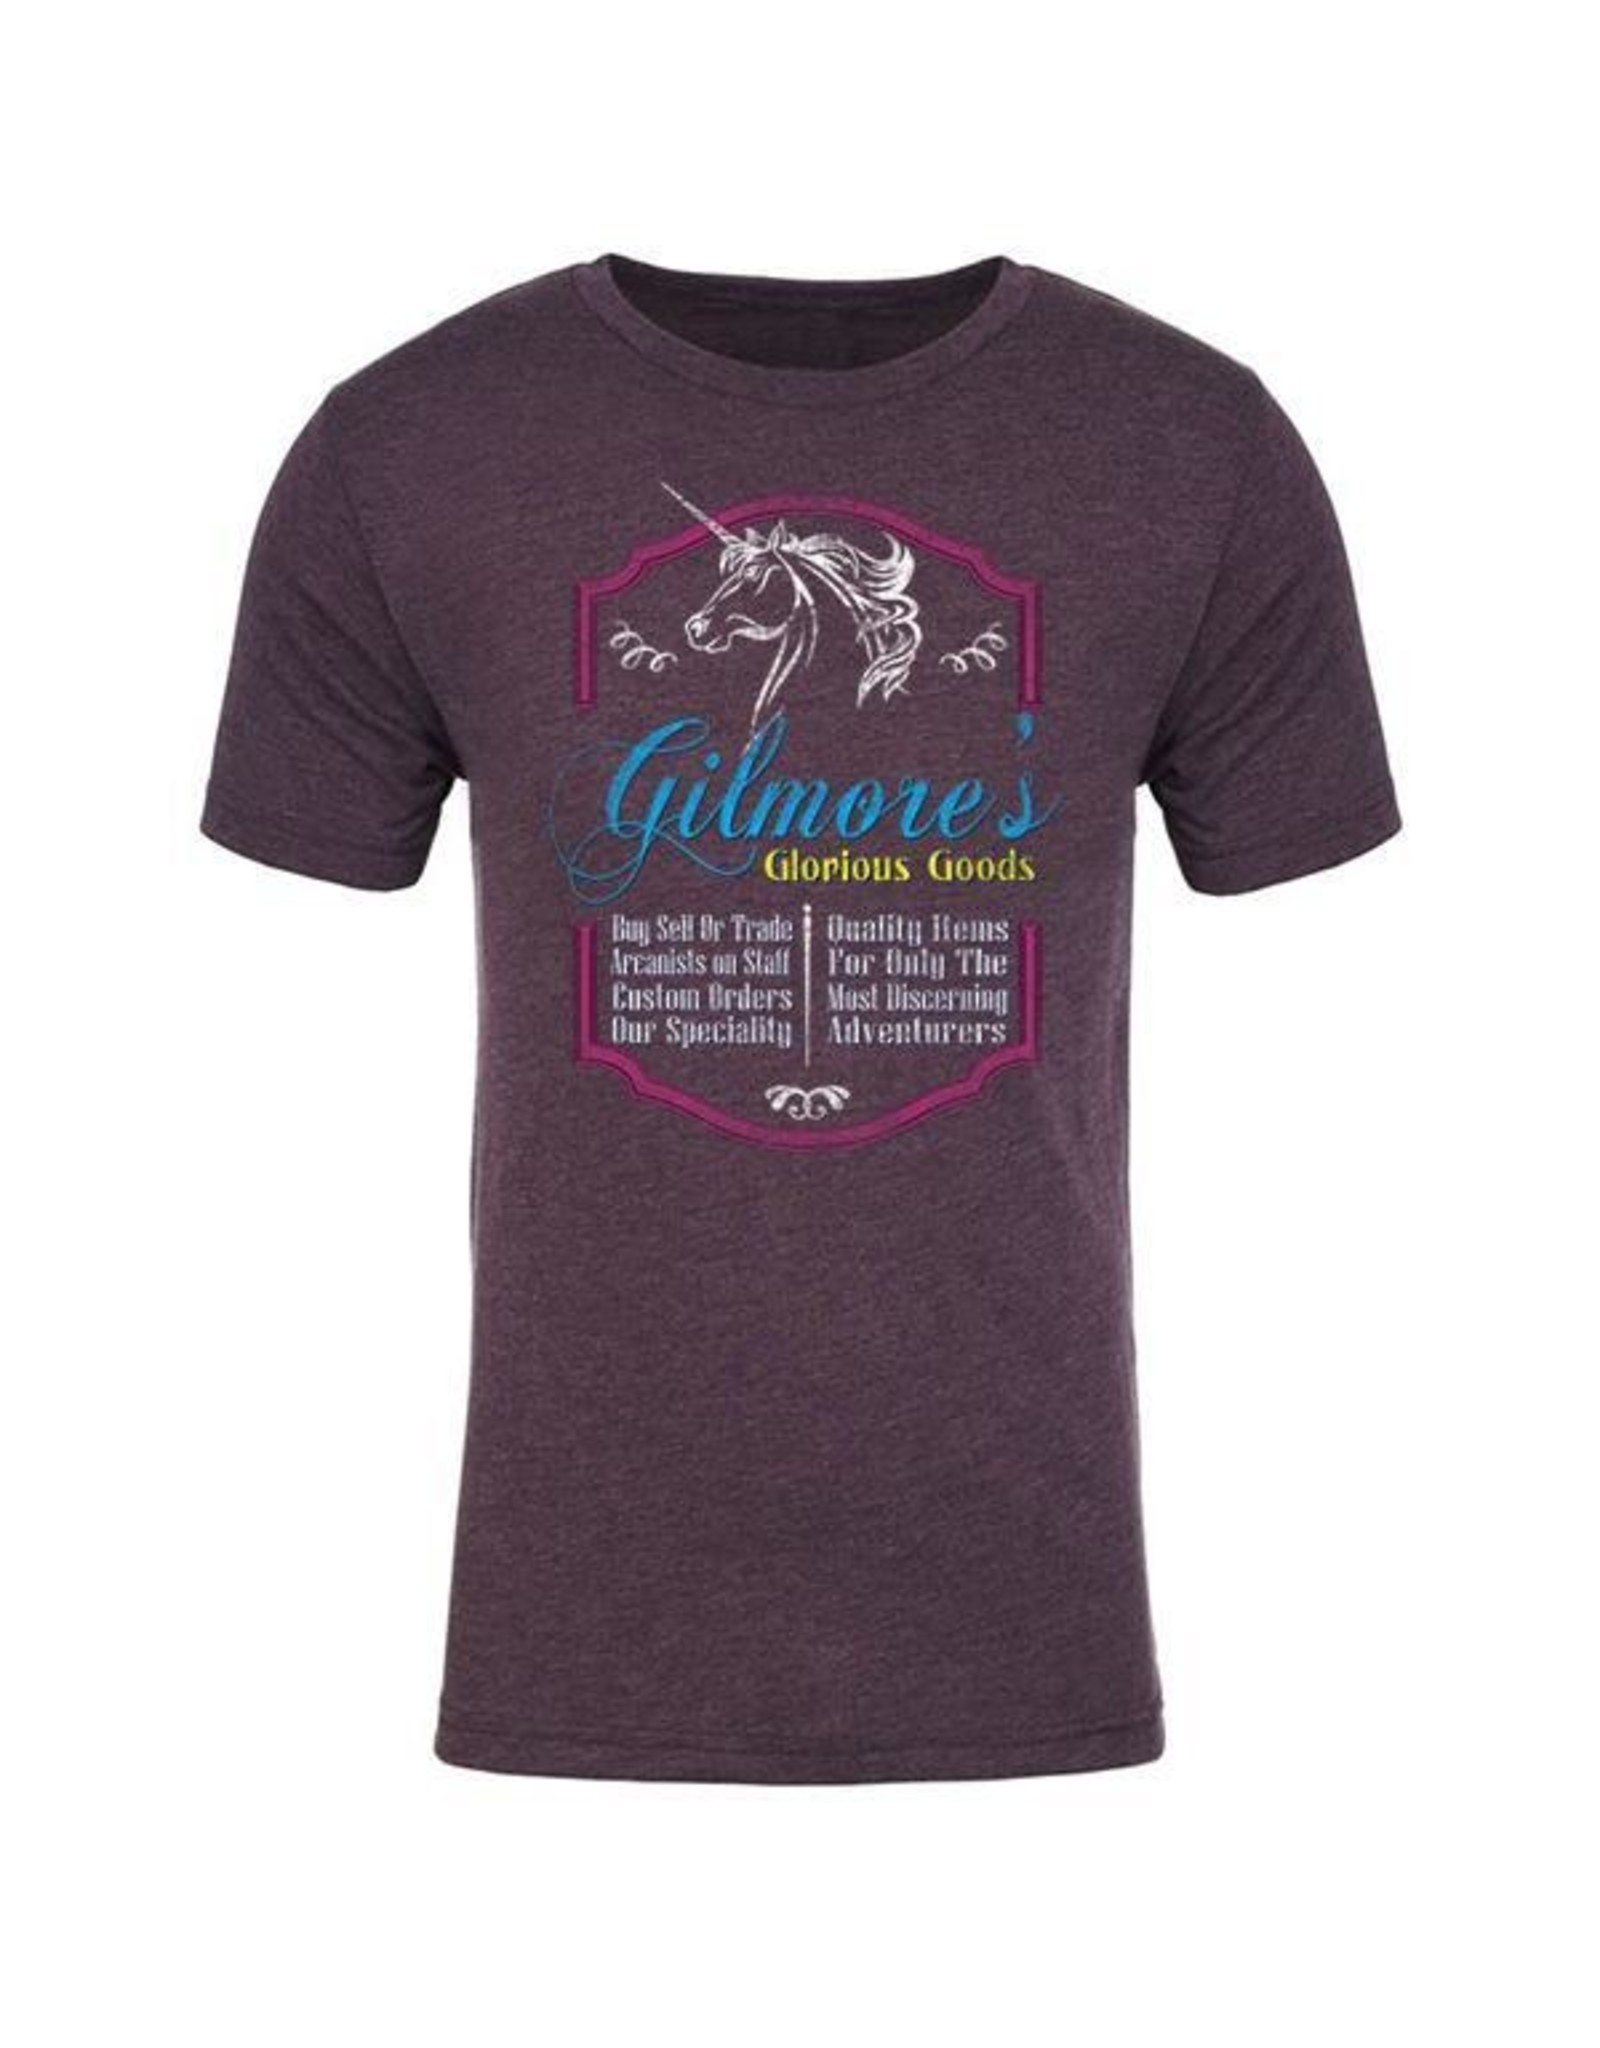 Critical Role Gilmore's Glorious Goods T-Shirt (XL)